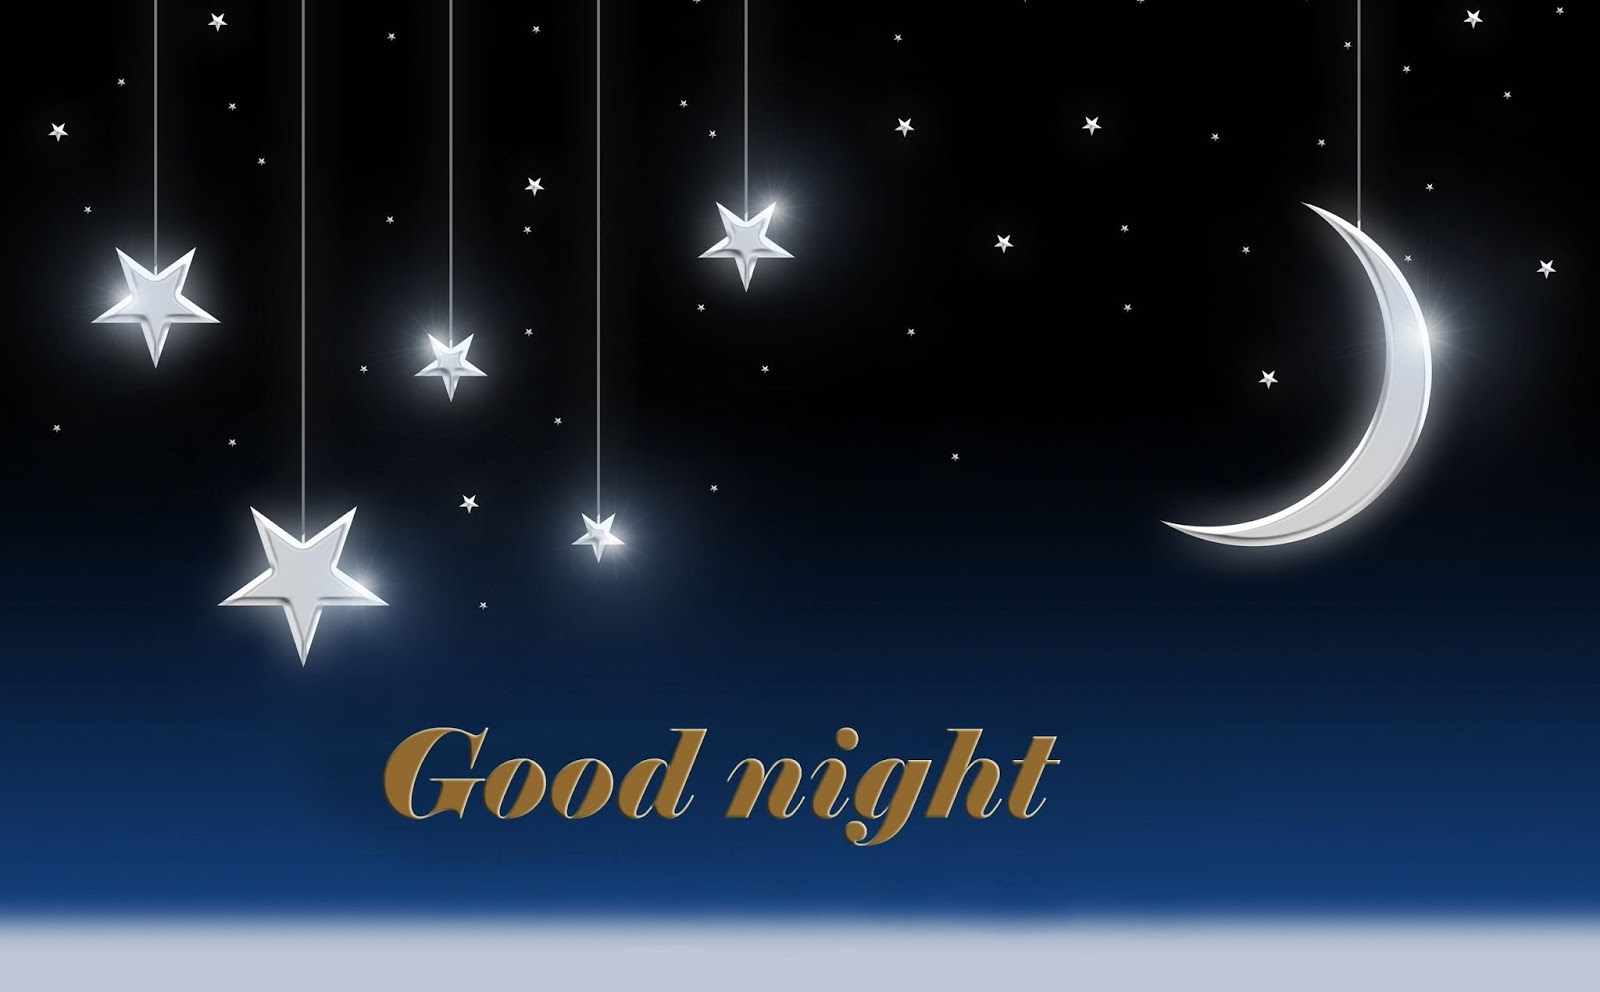 110 Good Night Hd Images Quotes 3d Picture Photos